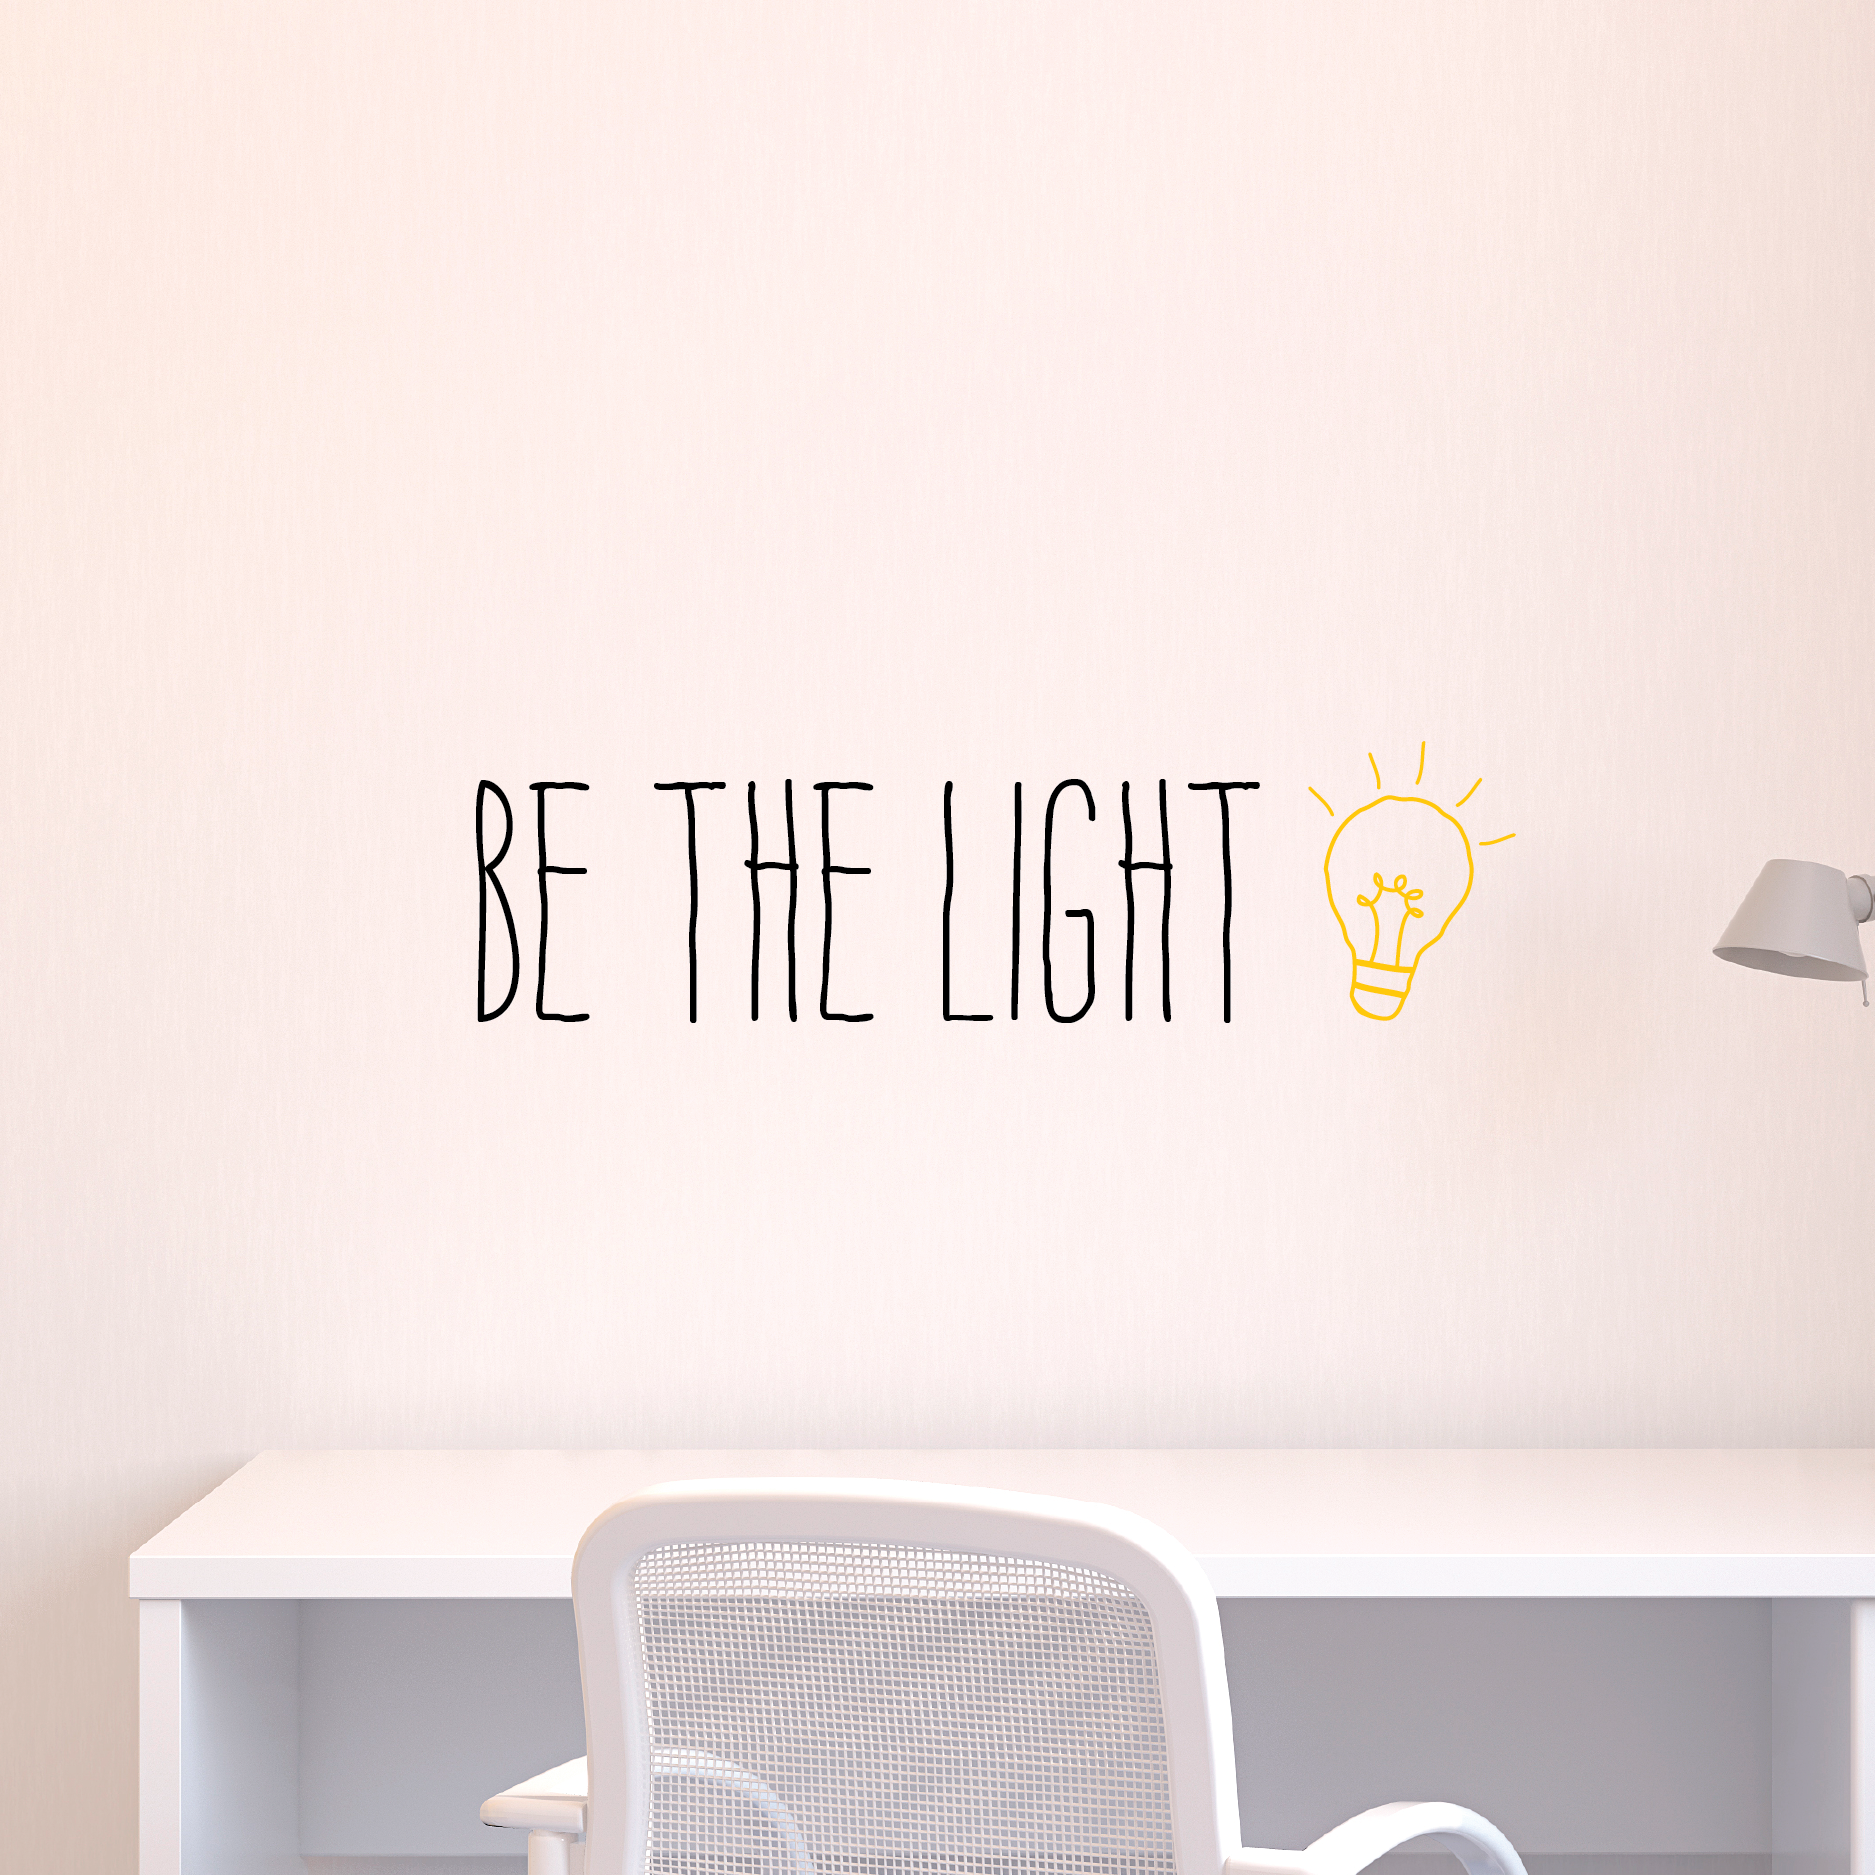 Wall Quotes With Lights : Whimsy Be the Light Wall Quotes Decal WallQuotes.com